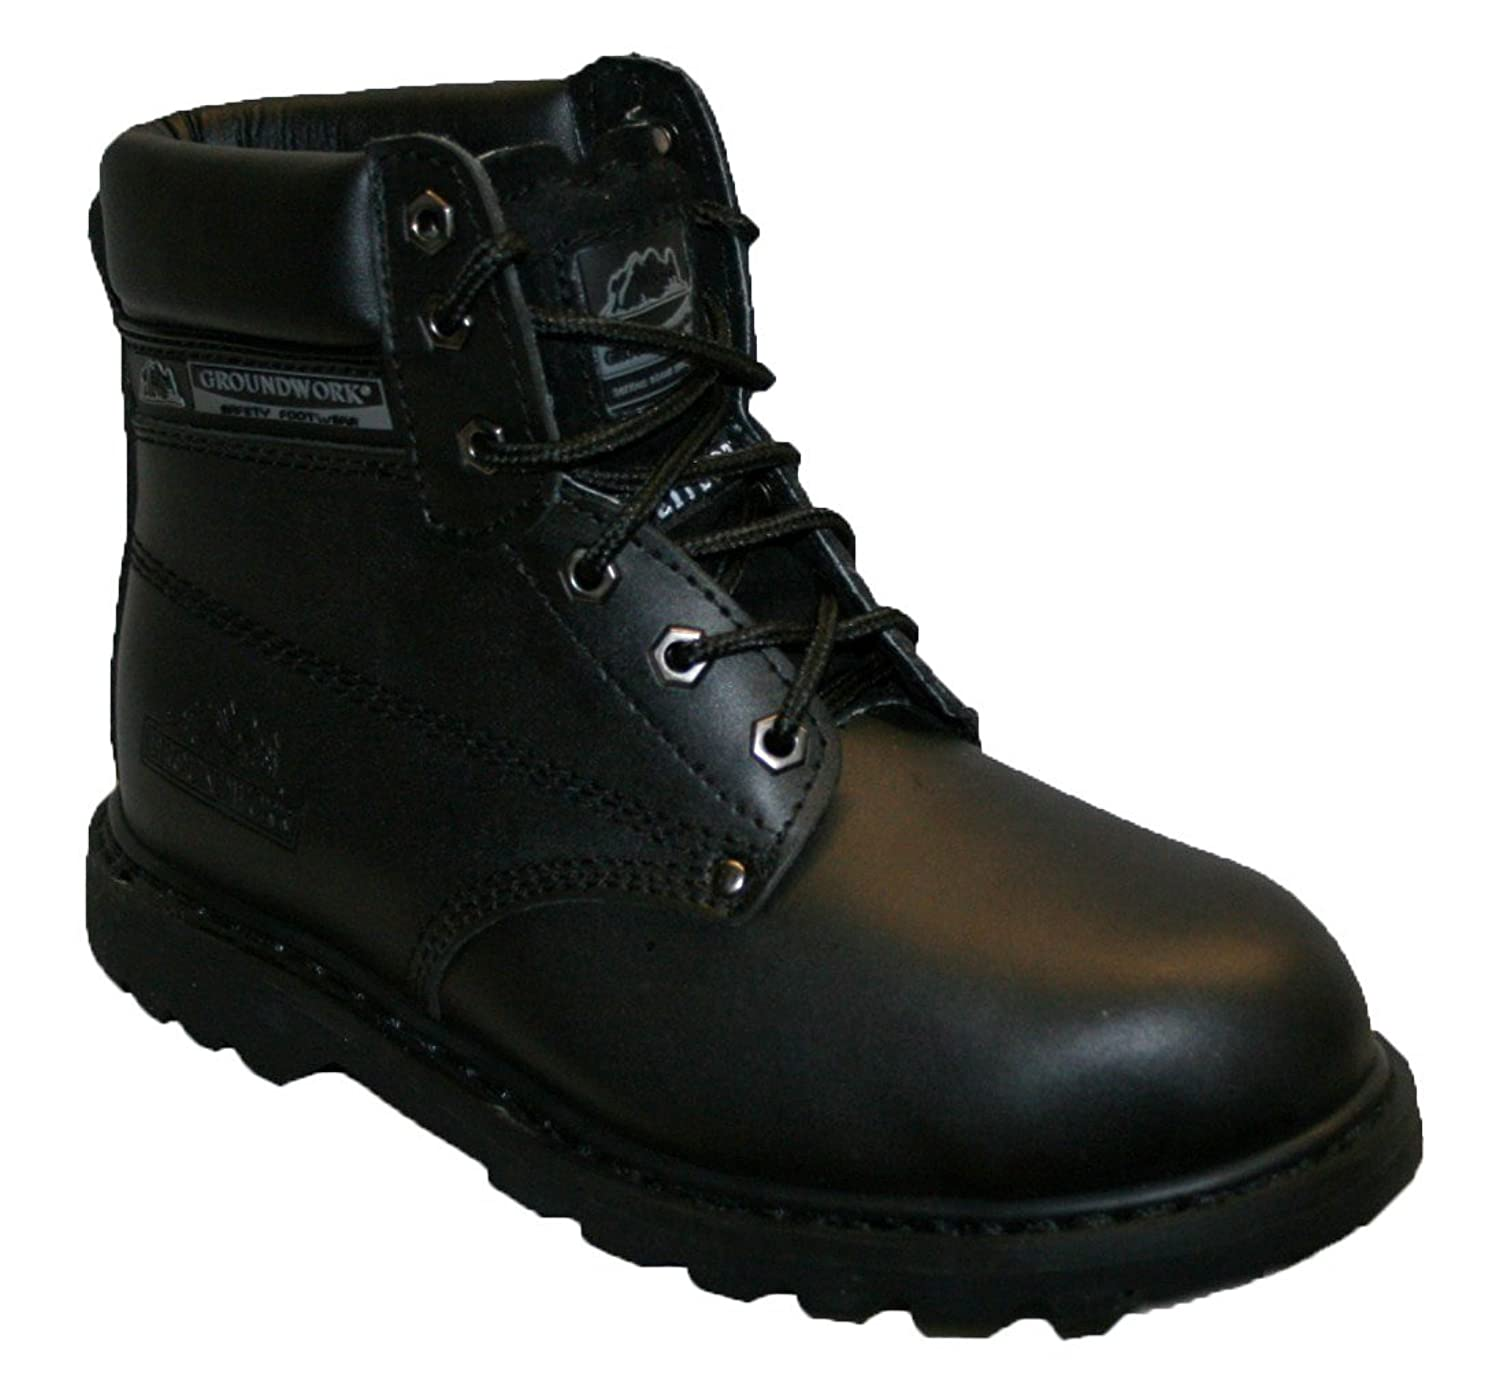 LADIES WORK BOOTS, LADIES STEEL TOE CAPS, LACE UP WITH TREAD SOLE